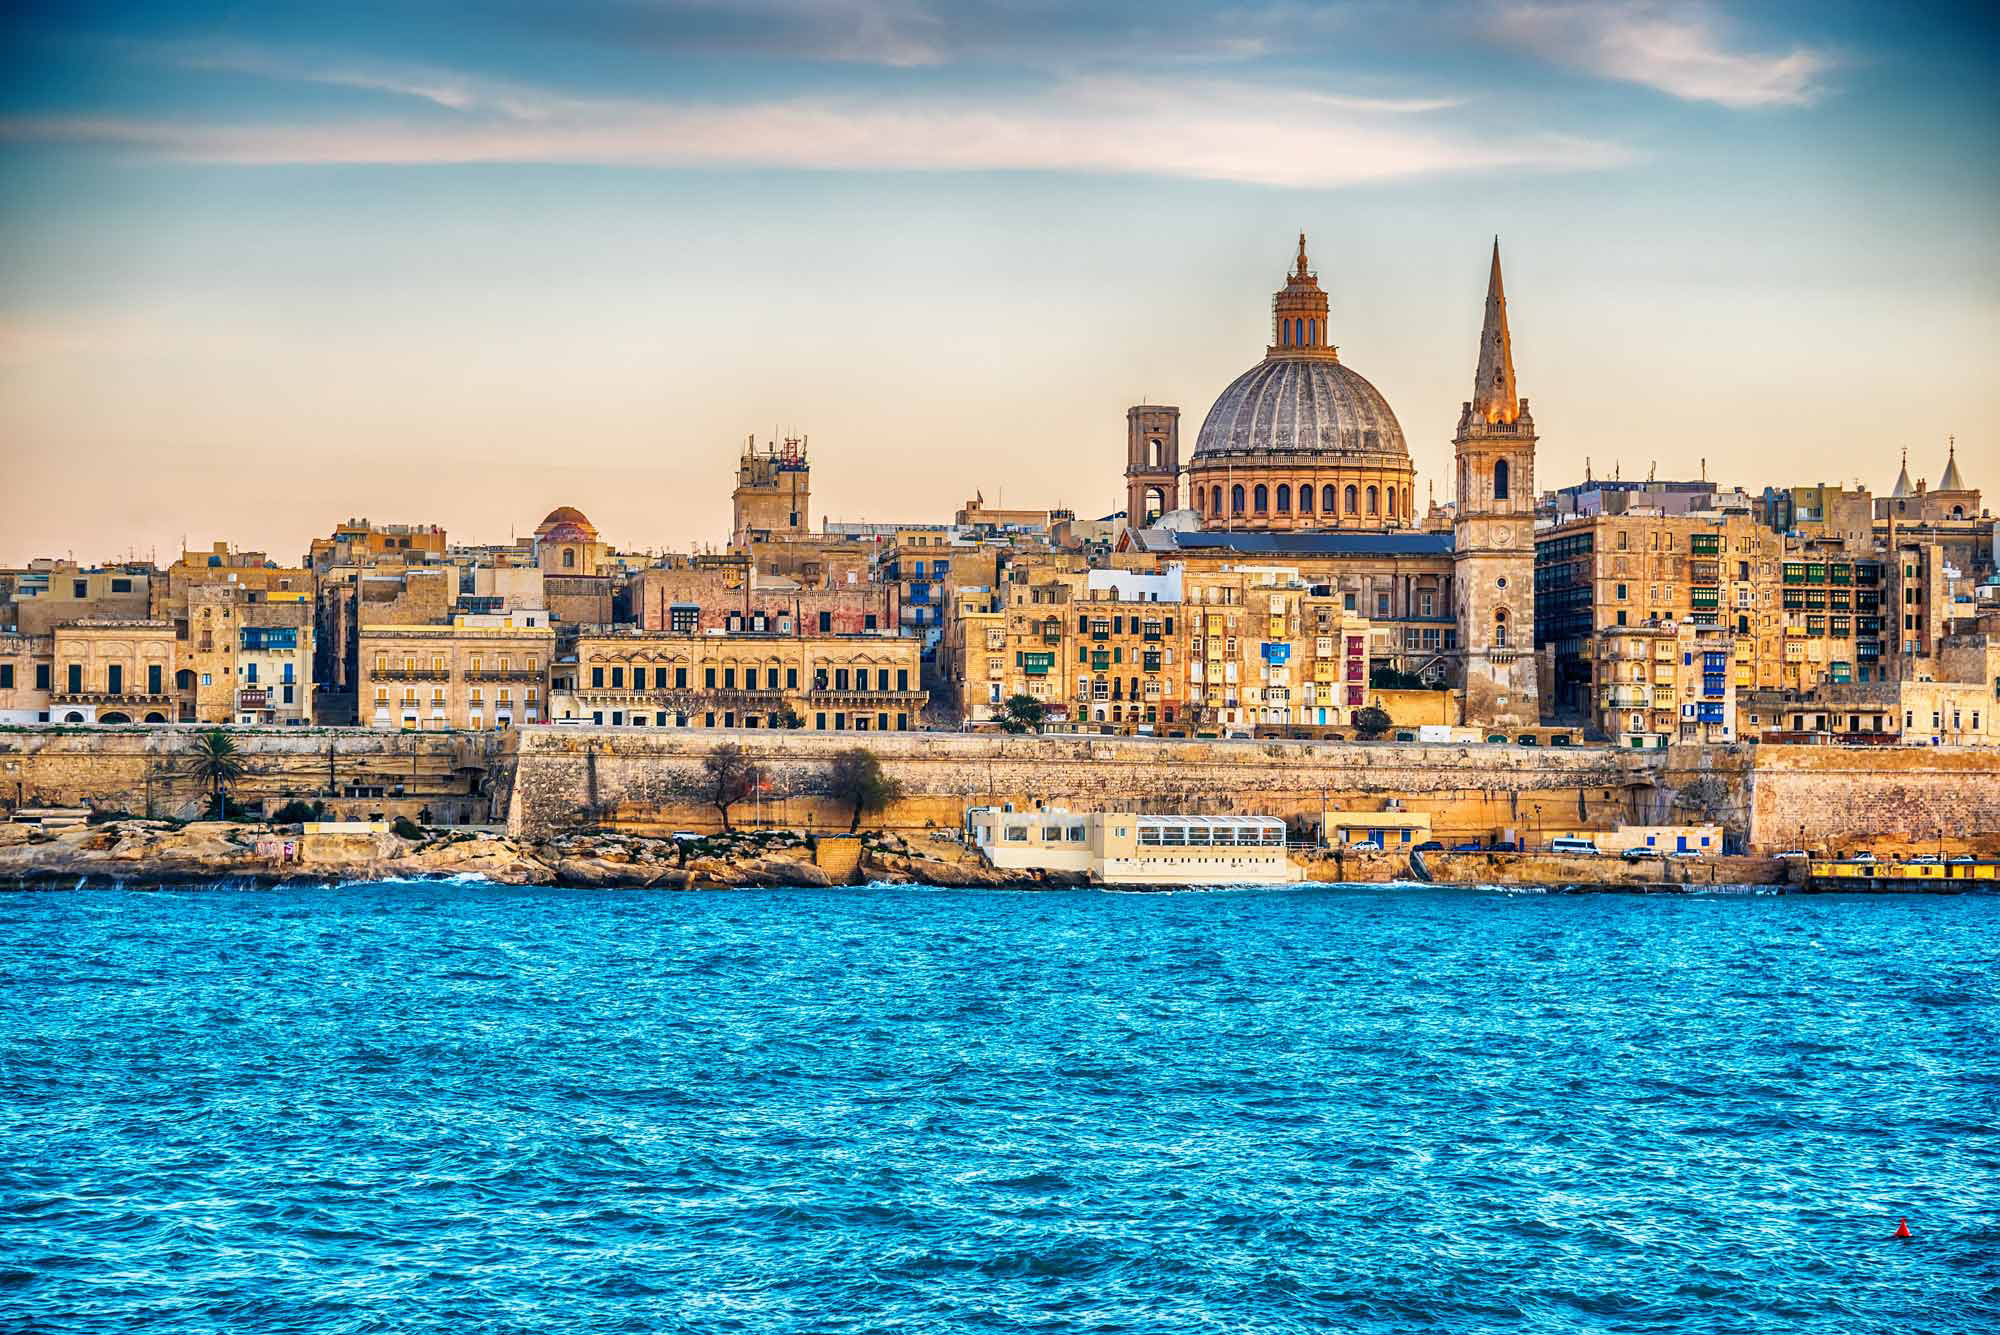 TrueNoord look forward to seeing you at ERA Regional Airline Conference 2020 in Malta